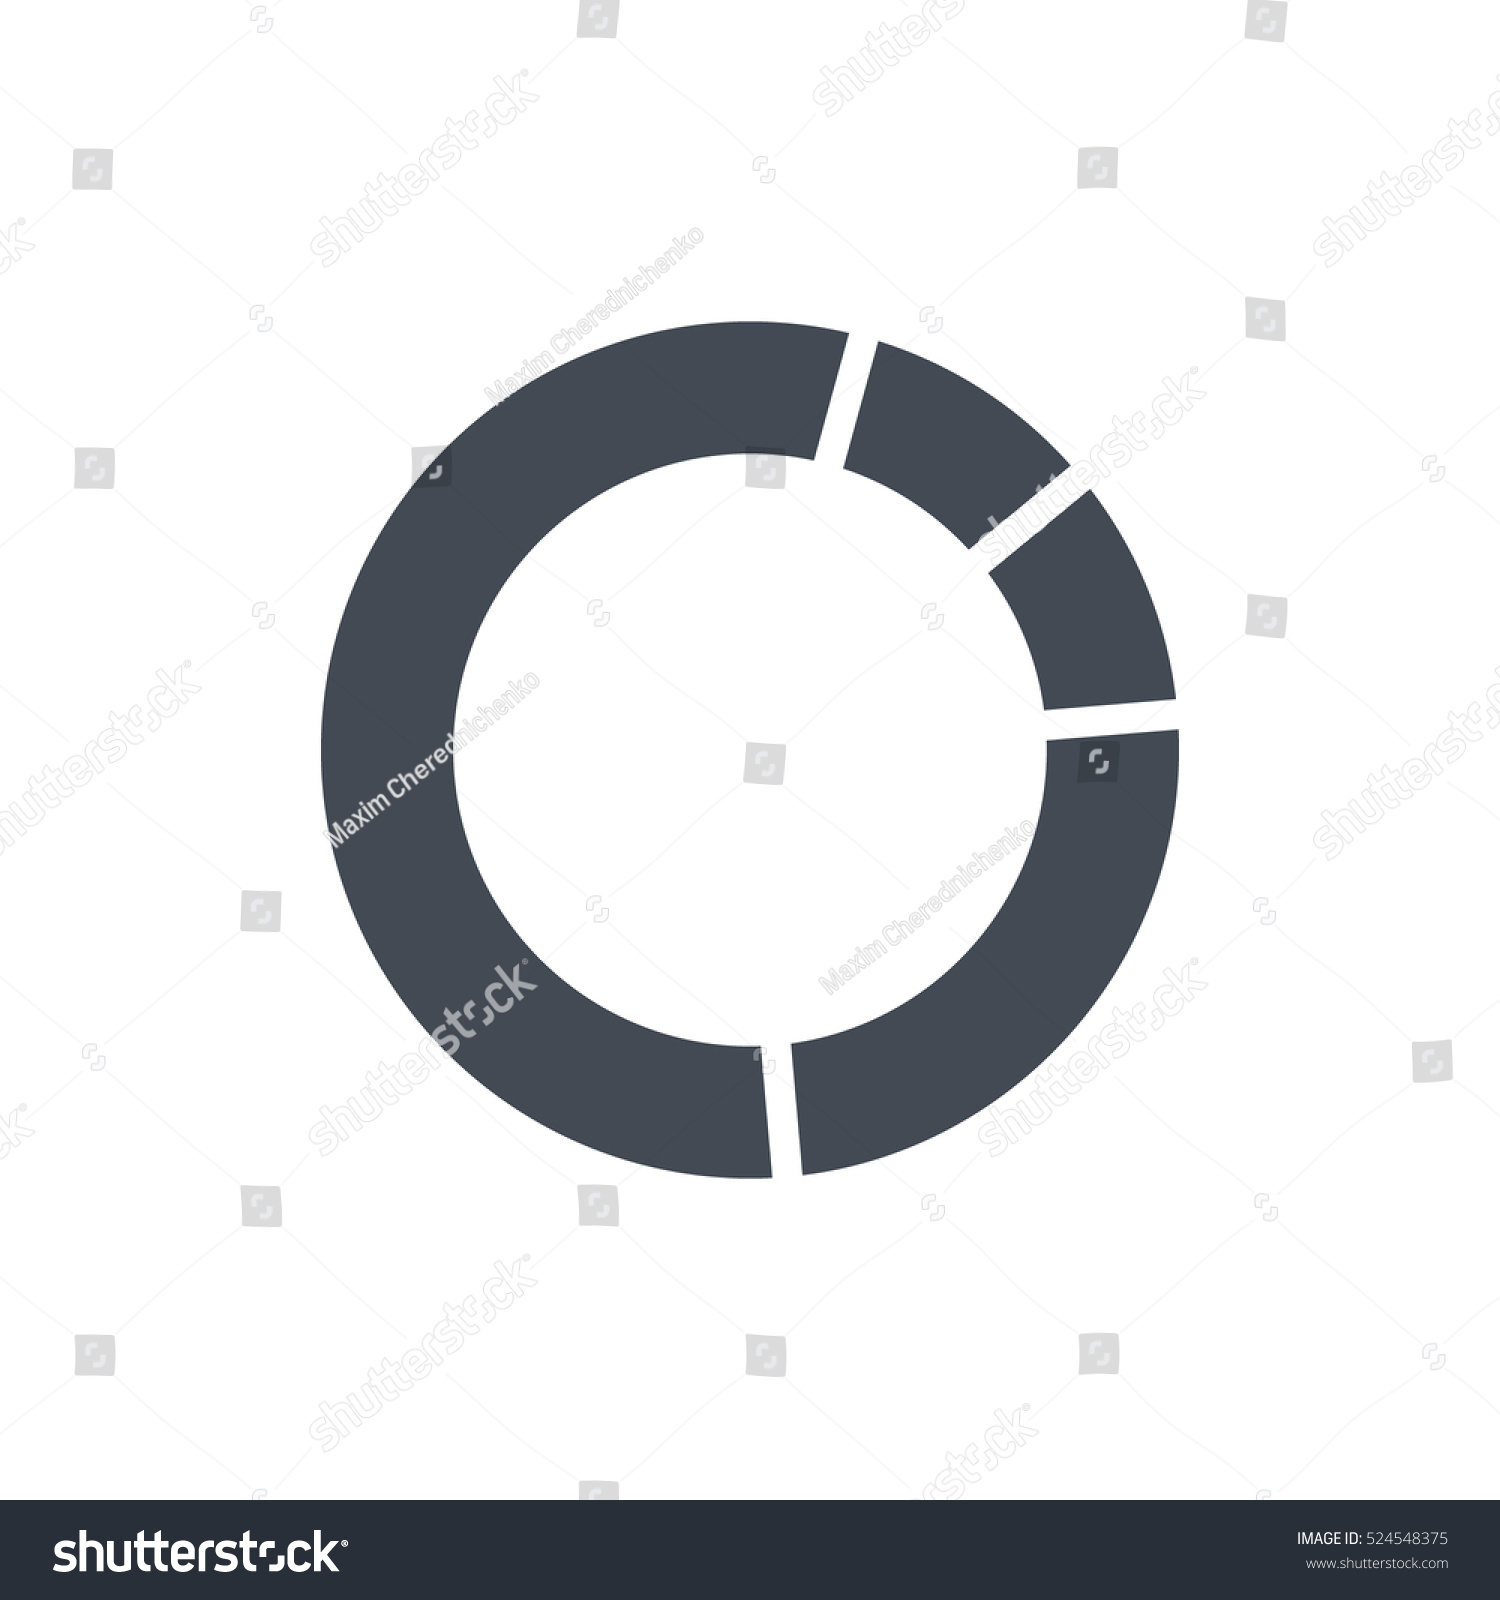 hight resolution of diagram chart icon vector business solid glyph silhouette